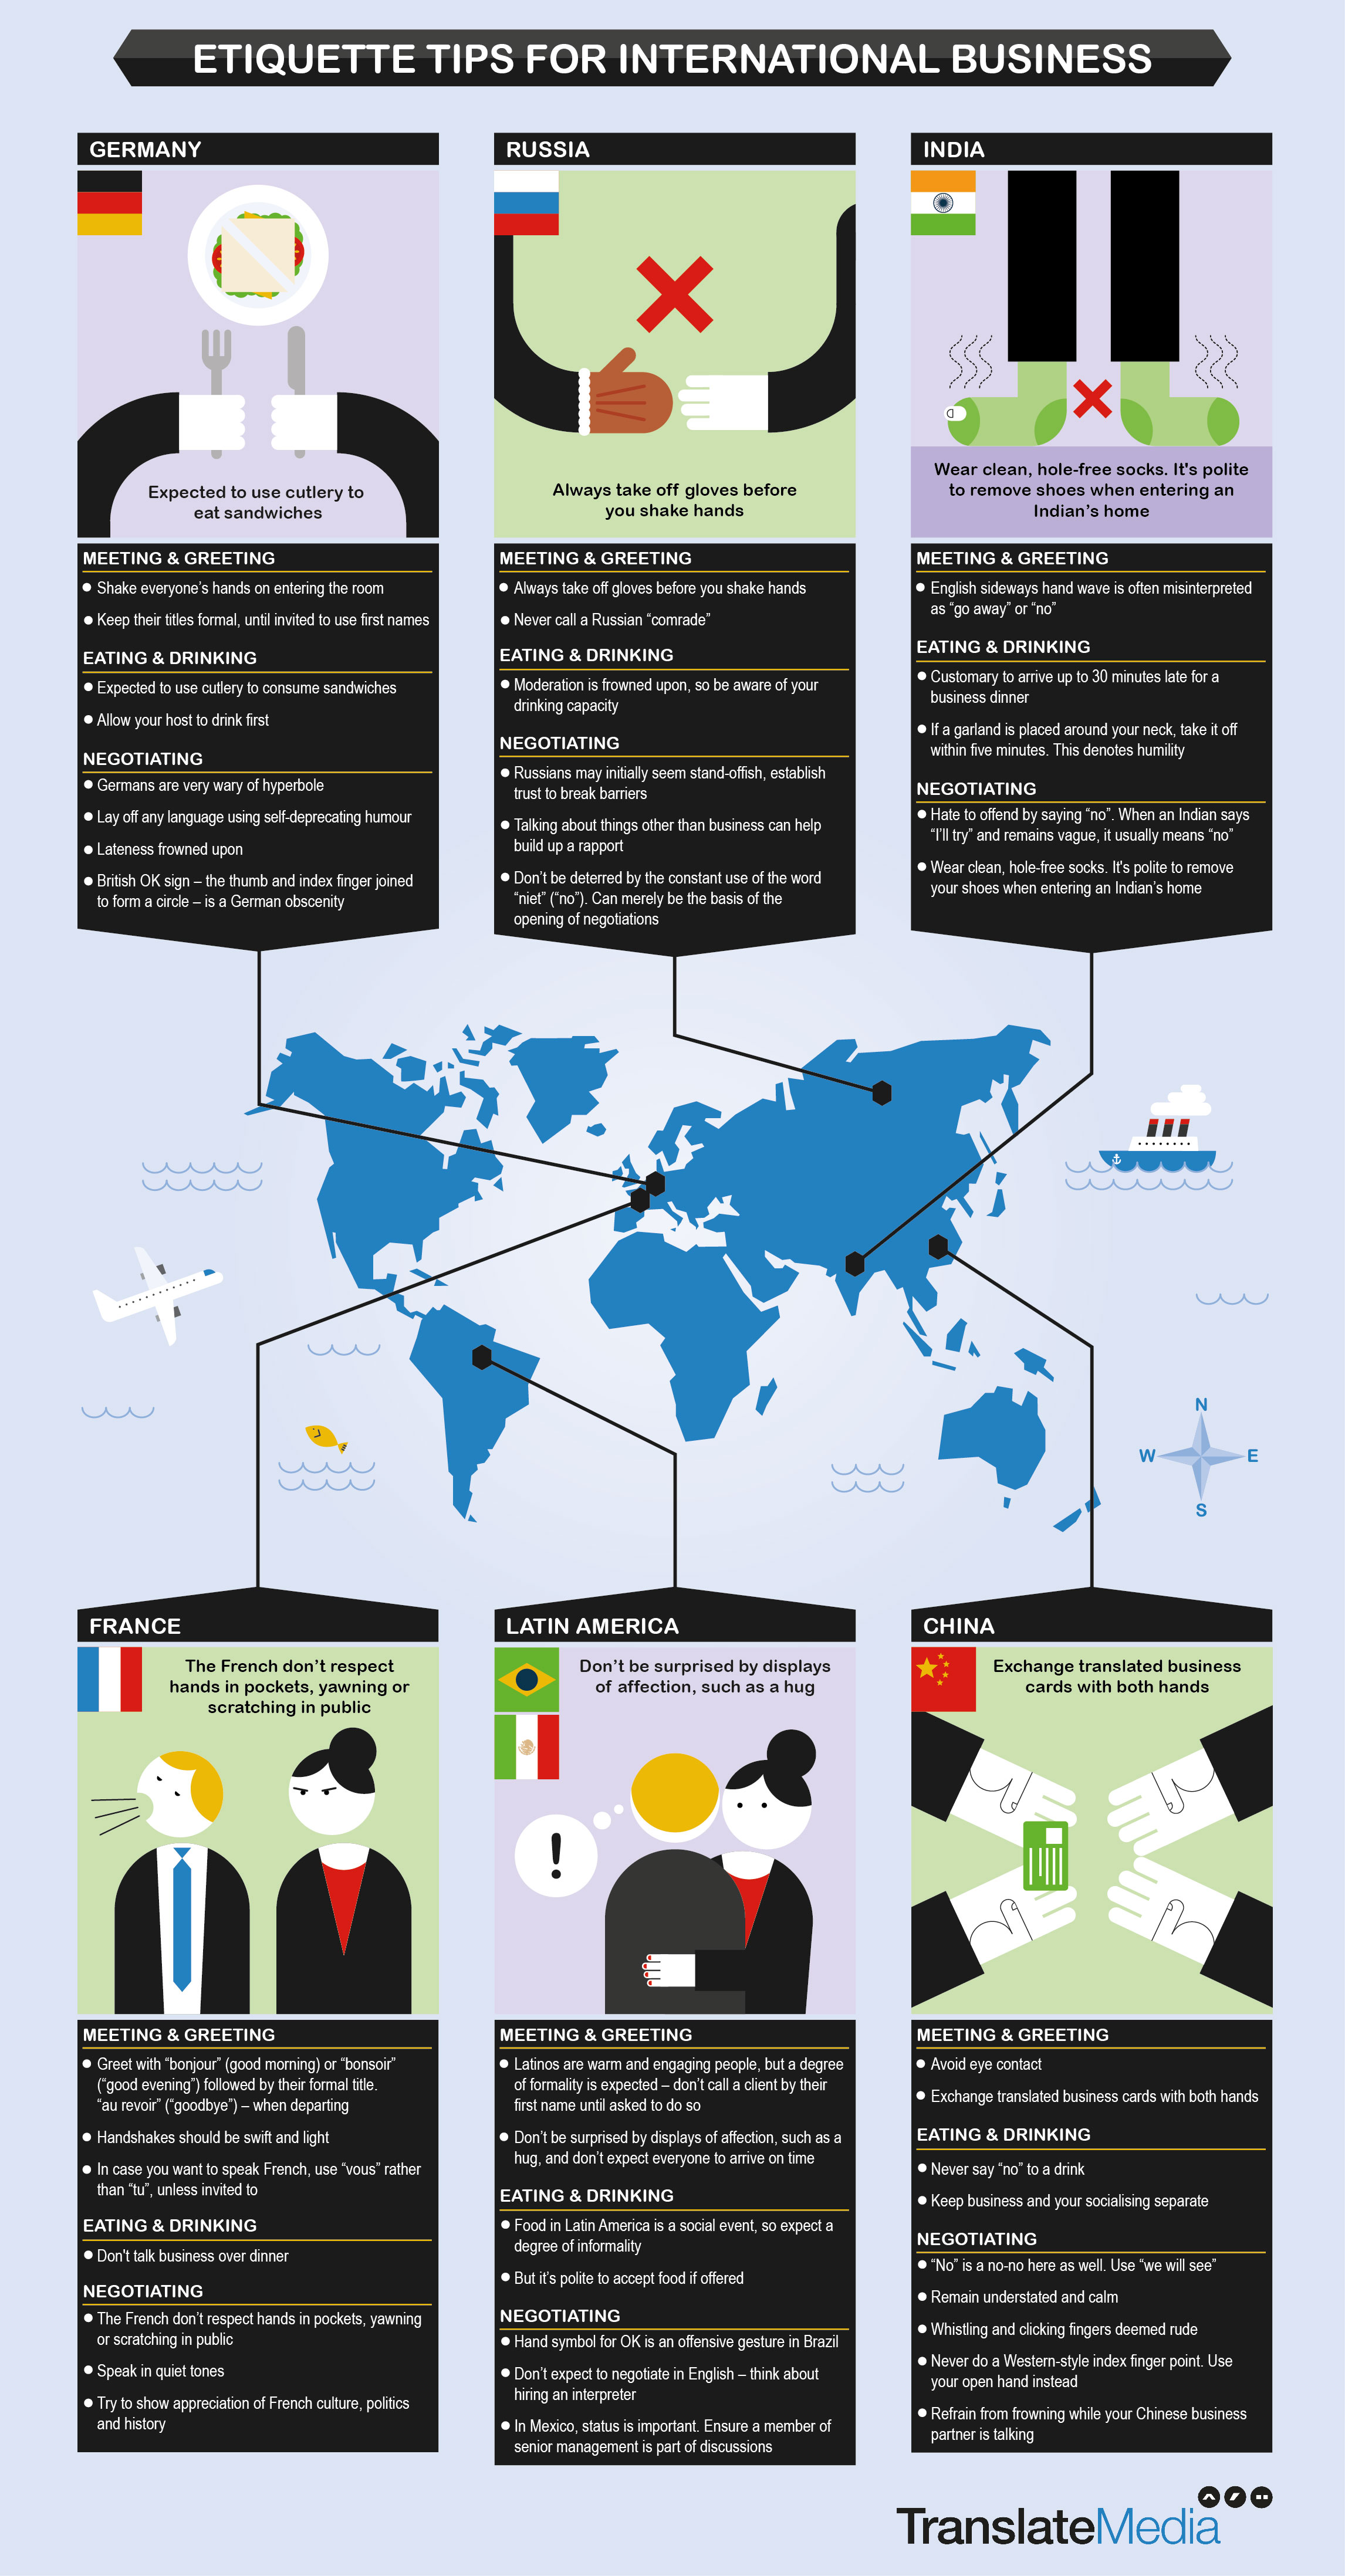 business etiquette guide essay Secrets of japanese business etiquette japanese business etiquette is another misunderstood aspect of doing business in japan: as with the section on japanese business culture, maybe it's not surprising that hundreds of thousands of people have also browsed this japanese business etiquette section since it first went online over a decade ago in 2004.